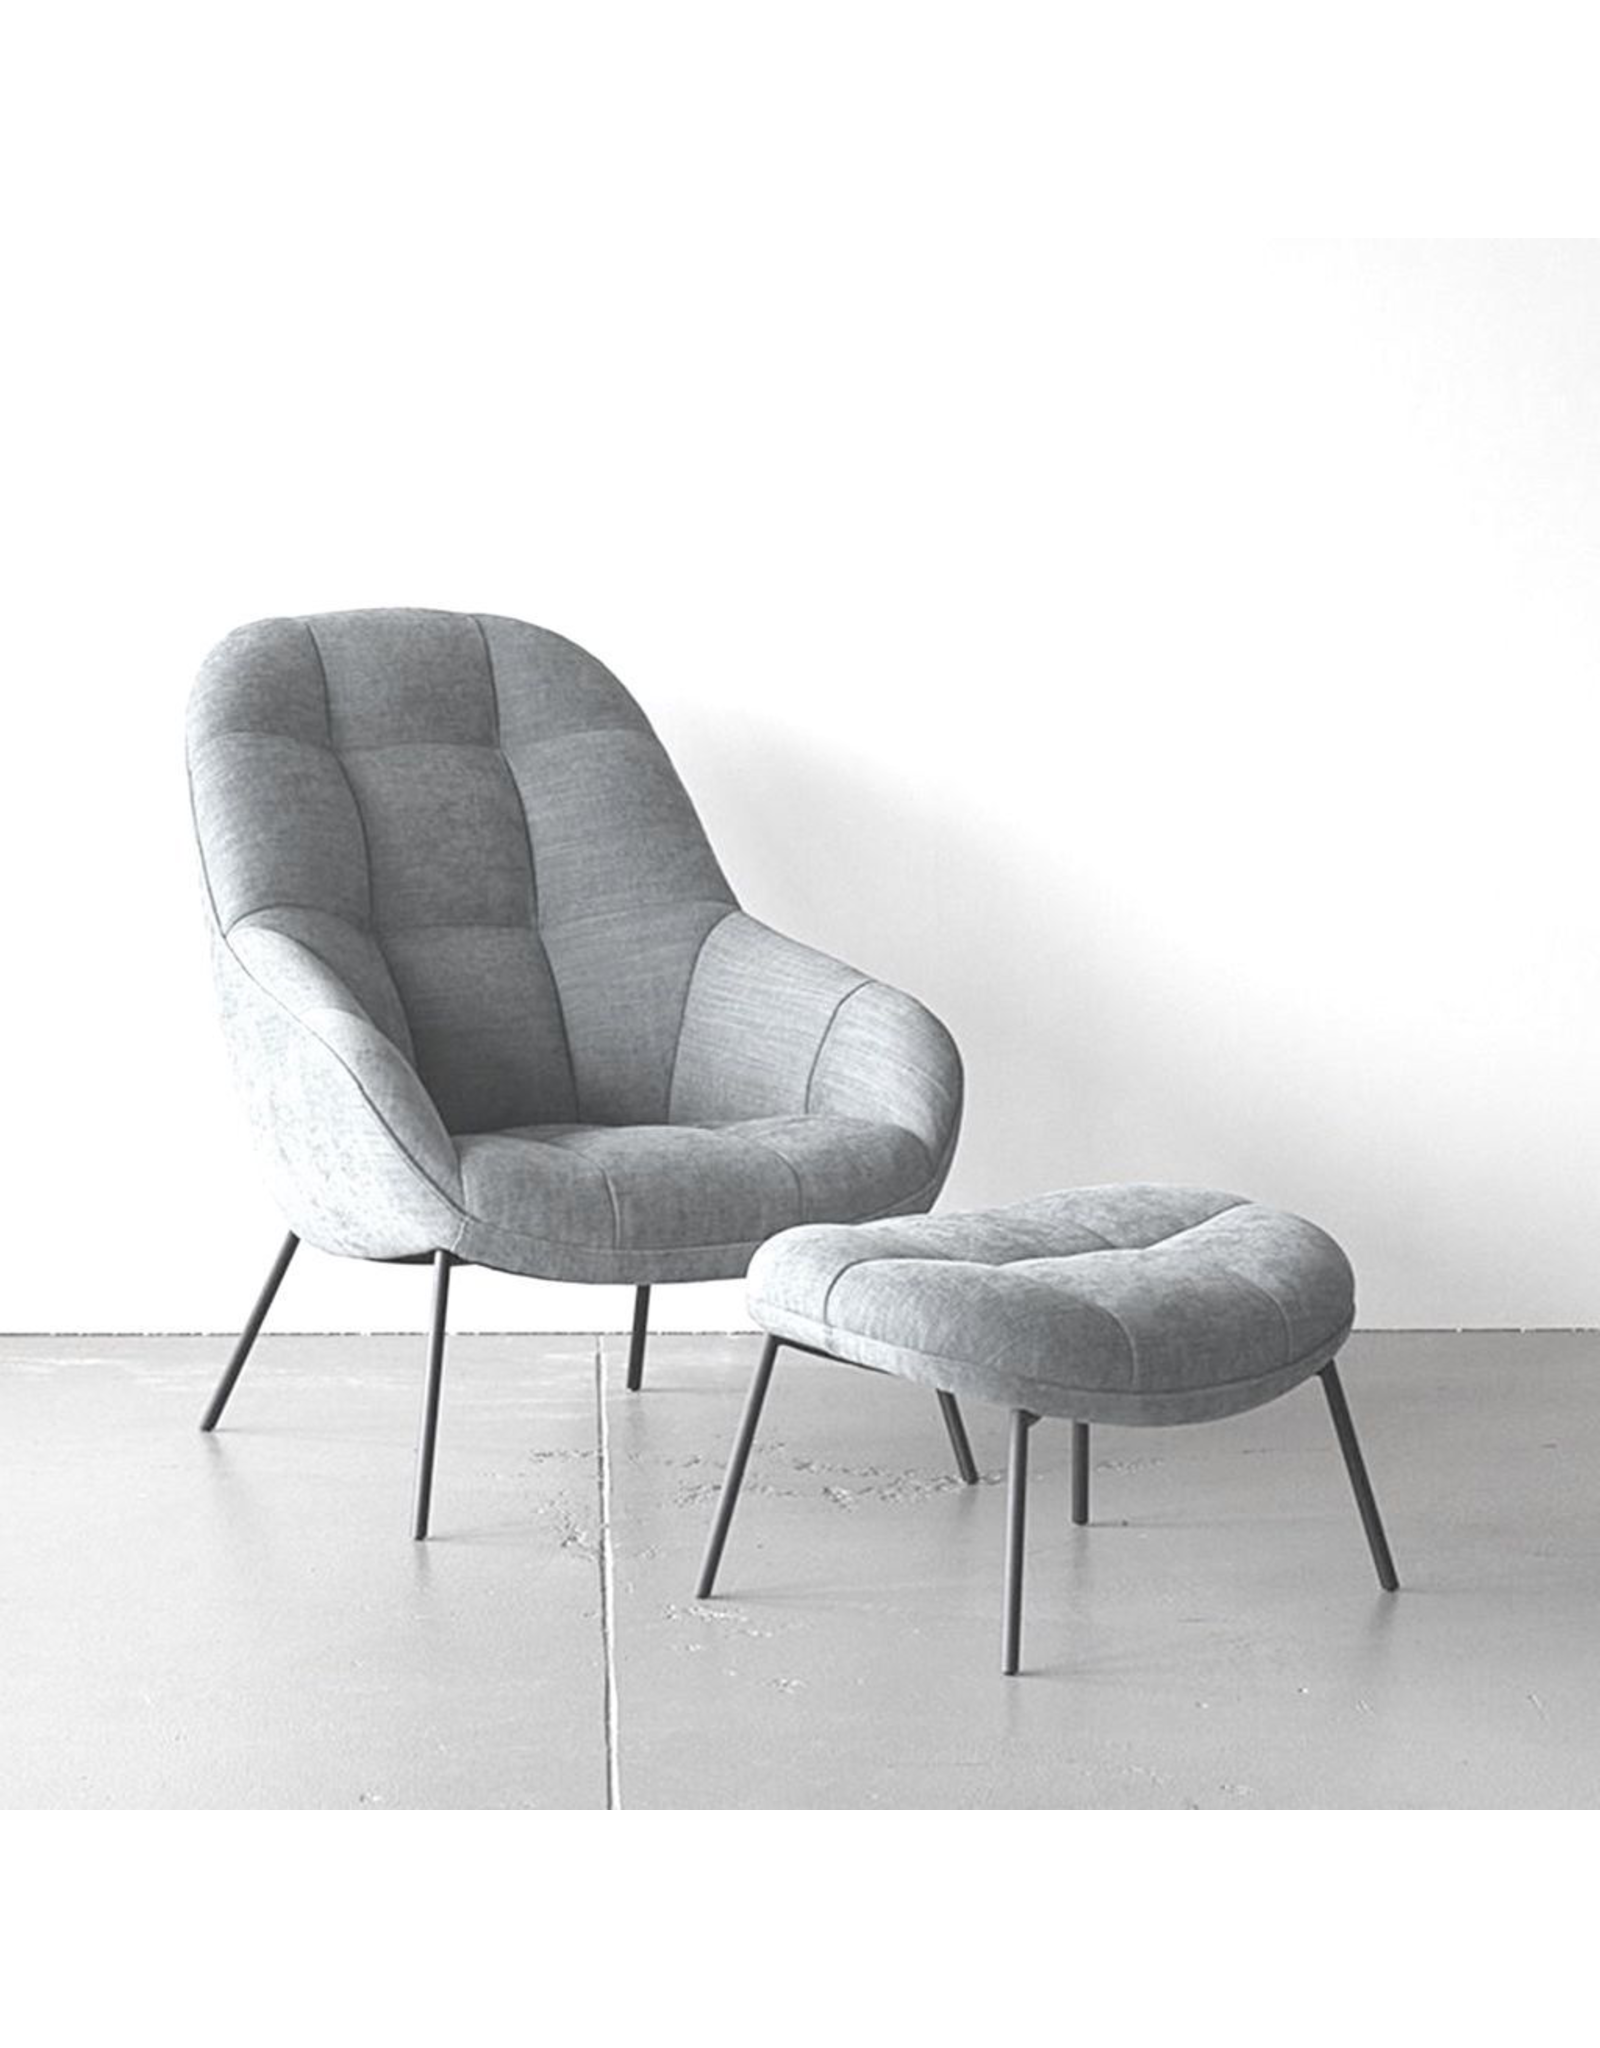 MANGO LOUNGE CHAIR WITH FOOTREST IN LIGHT GREY